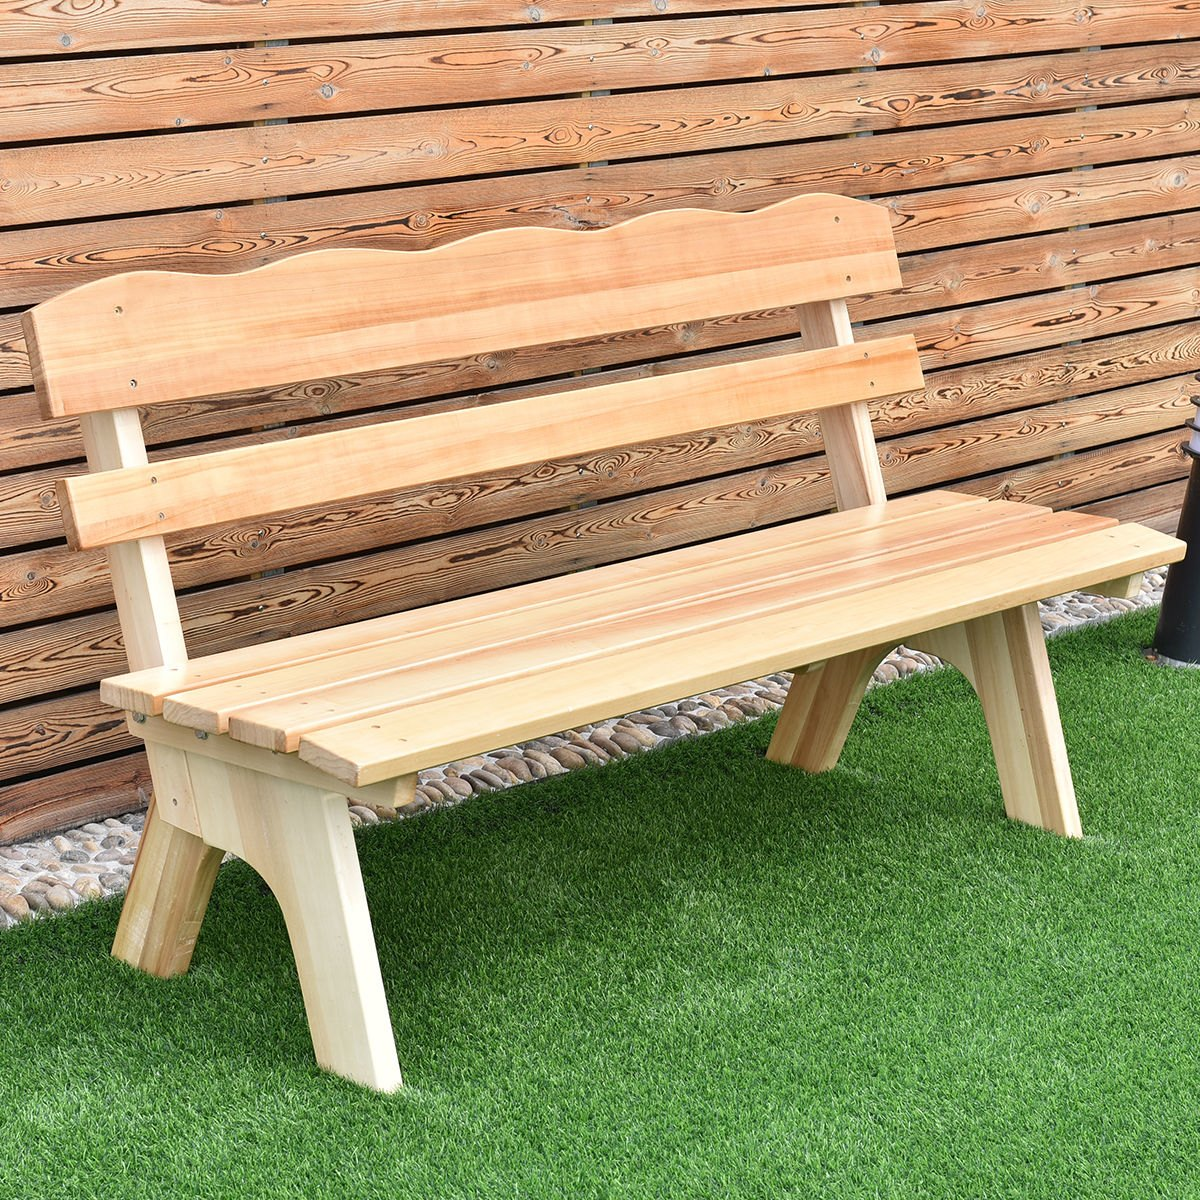 wooden garden benches costway 5 ft 3 seats outdoor wooden garden bench chair wood frame AOLGSBB